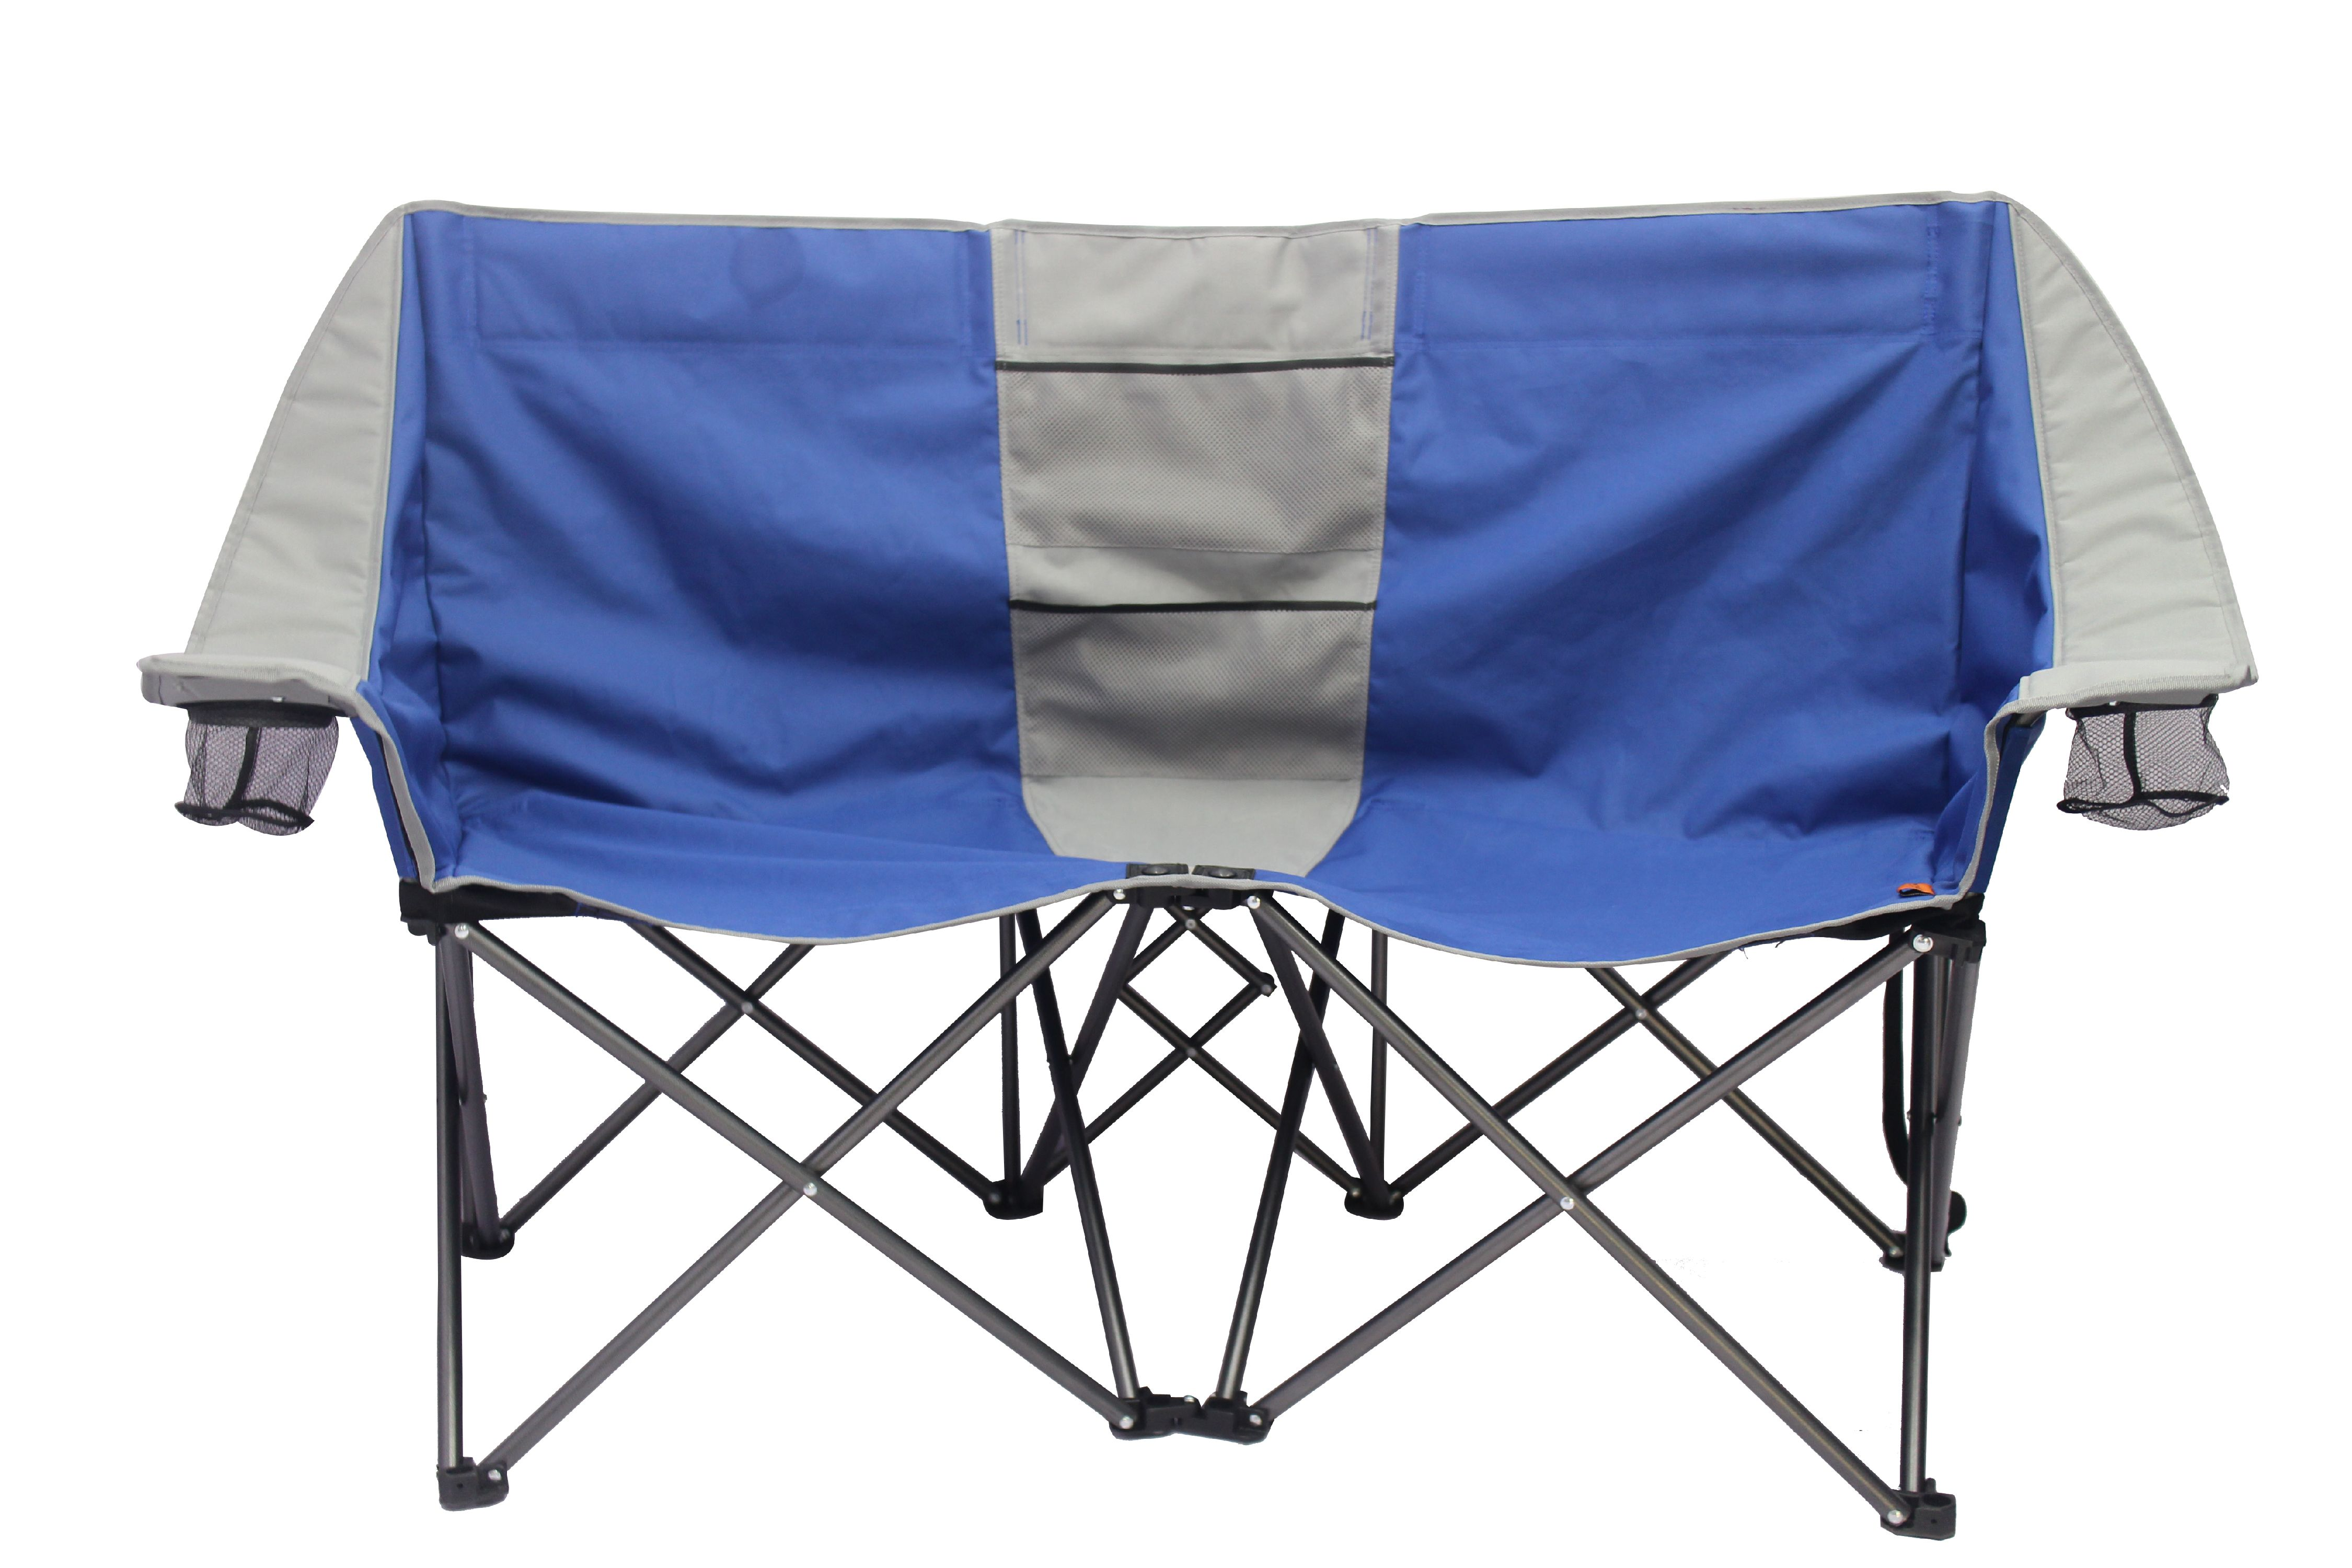 2 person camping chair steel buy online ozark trail loveseat conversation hiking details